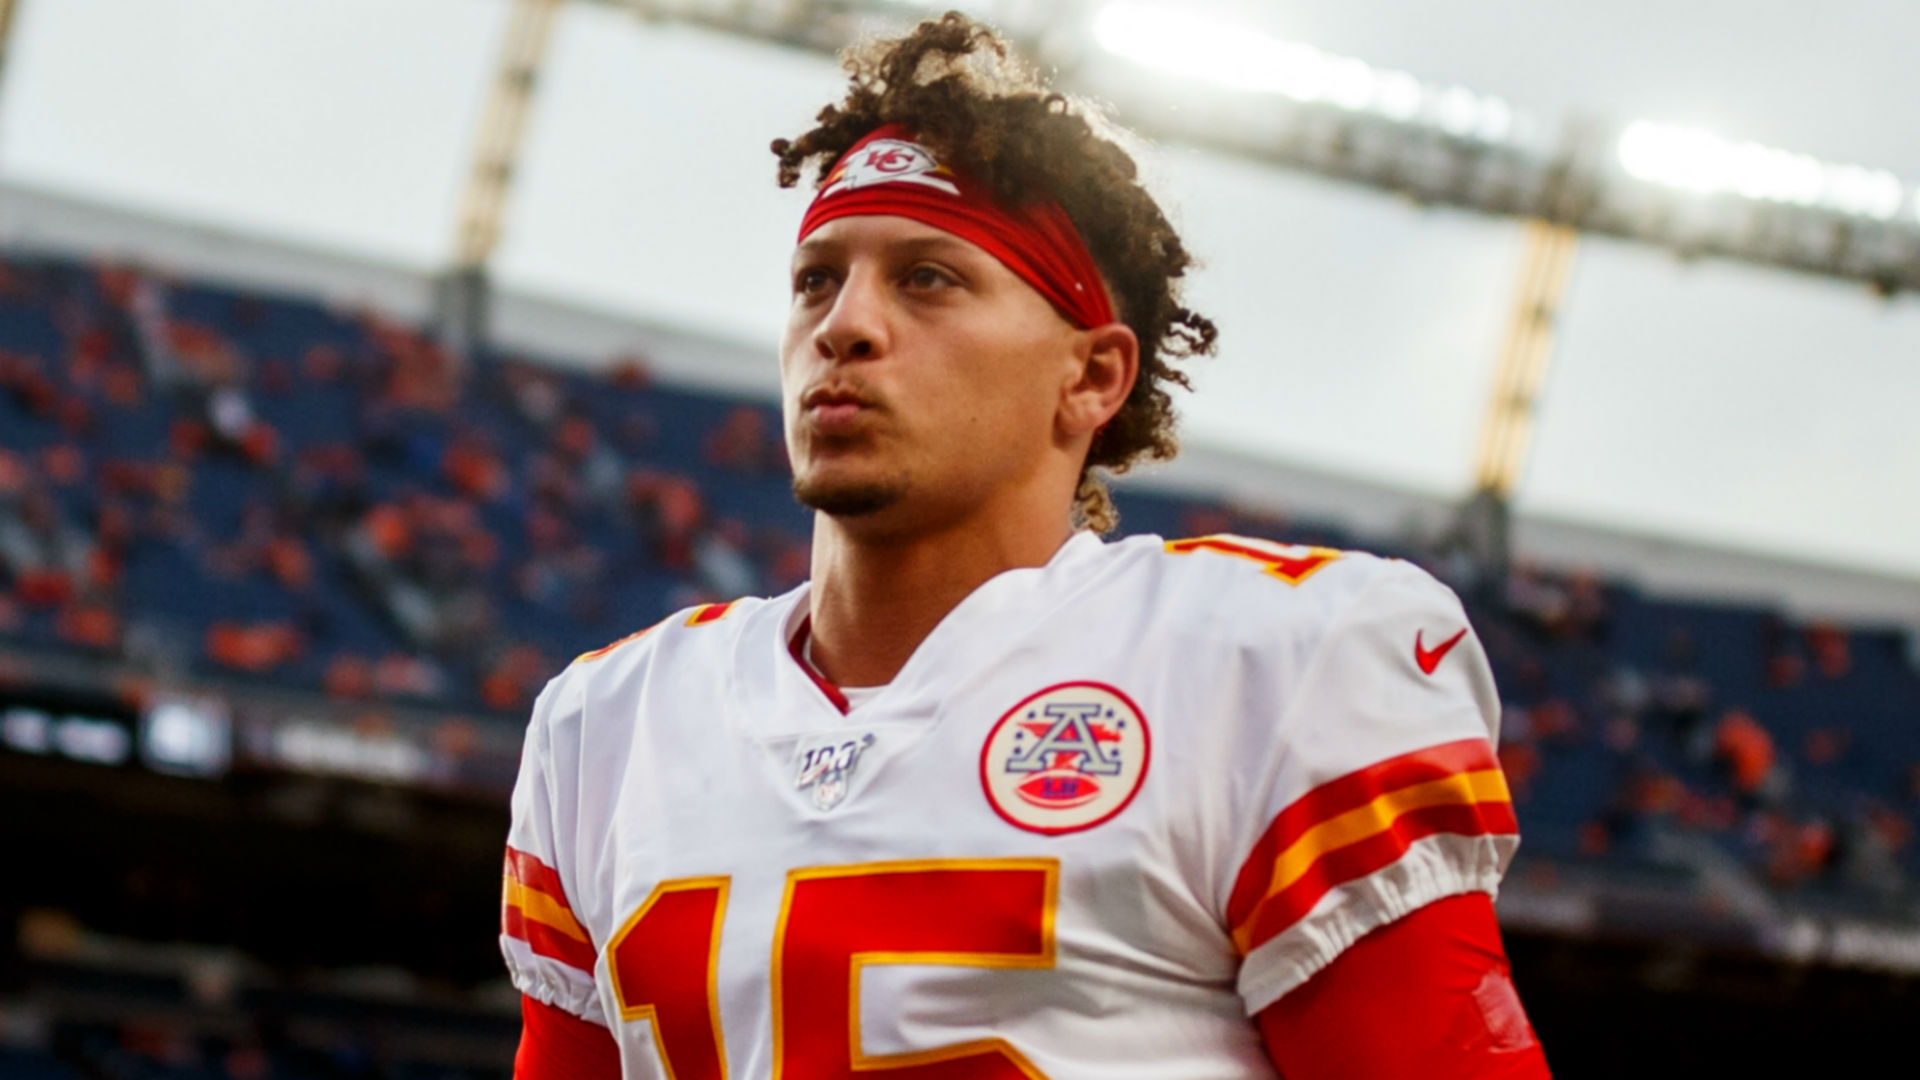 Patrick Mahomes, Russell Wilson, other NFL stars tweet concerns over training camp protocols 1